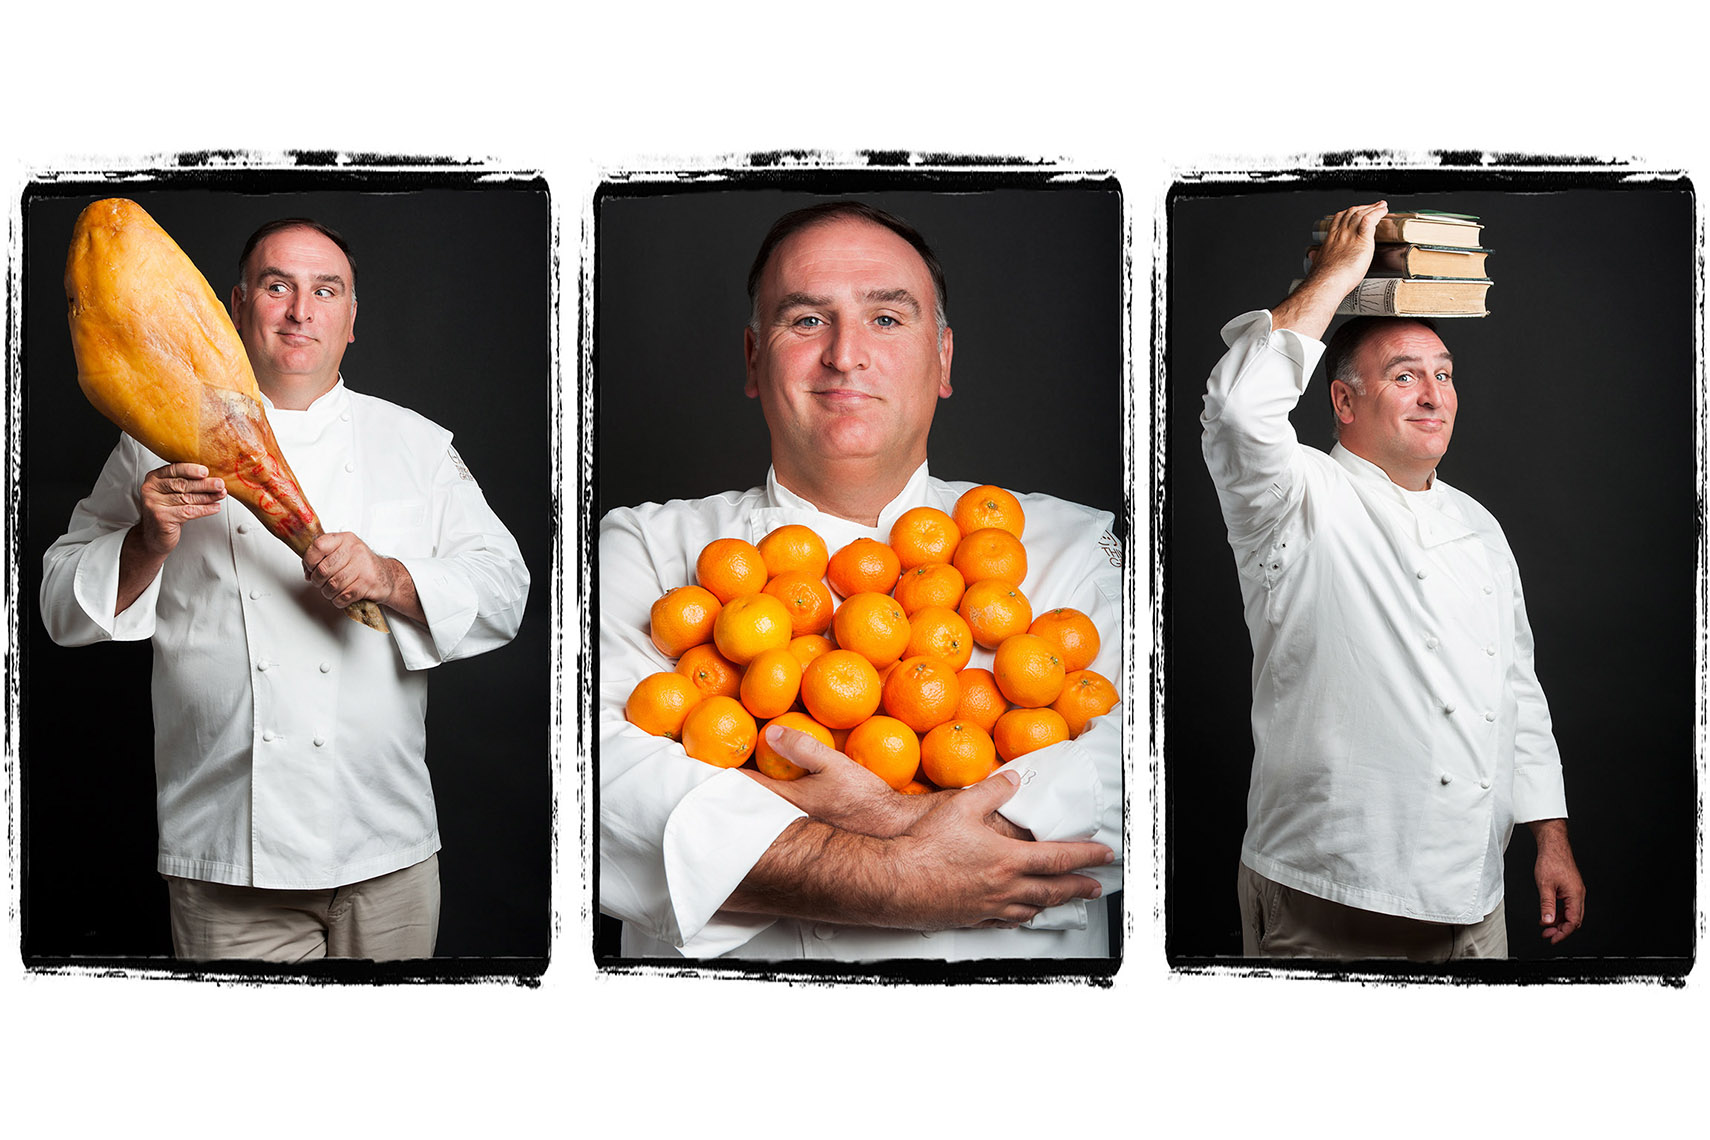 Chef Portrait of Jose Andres